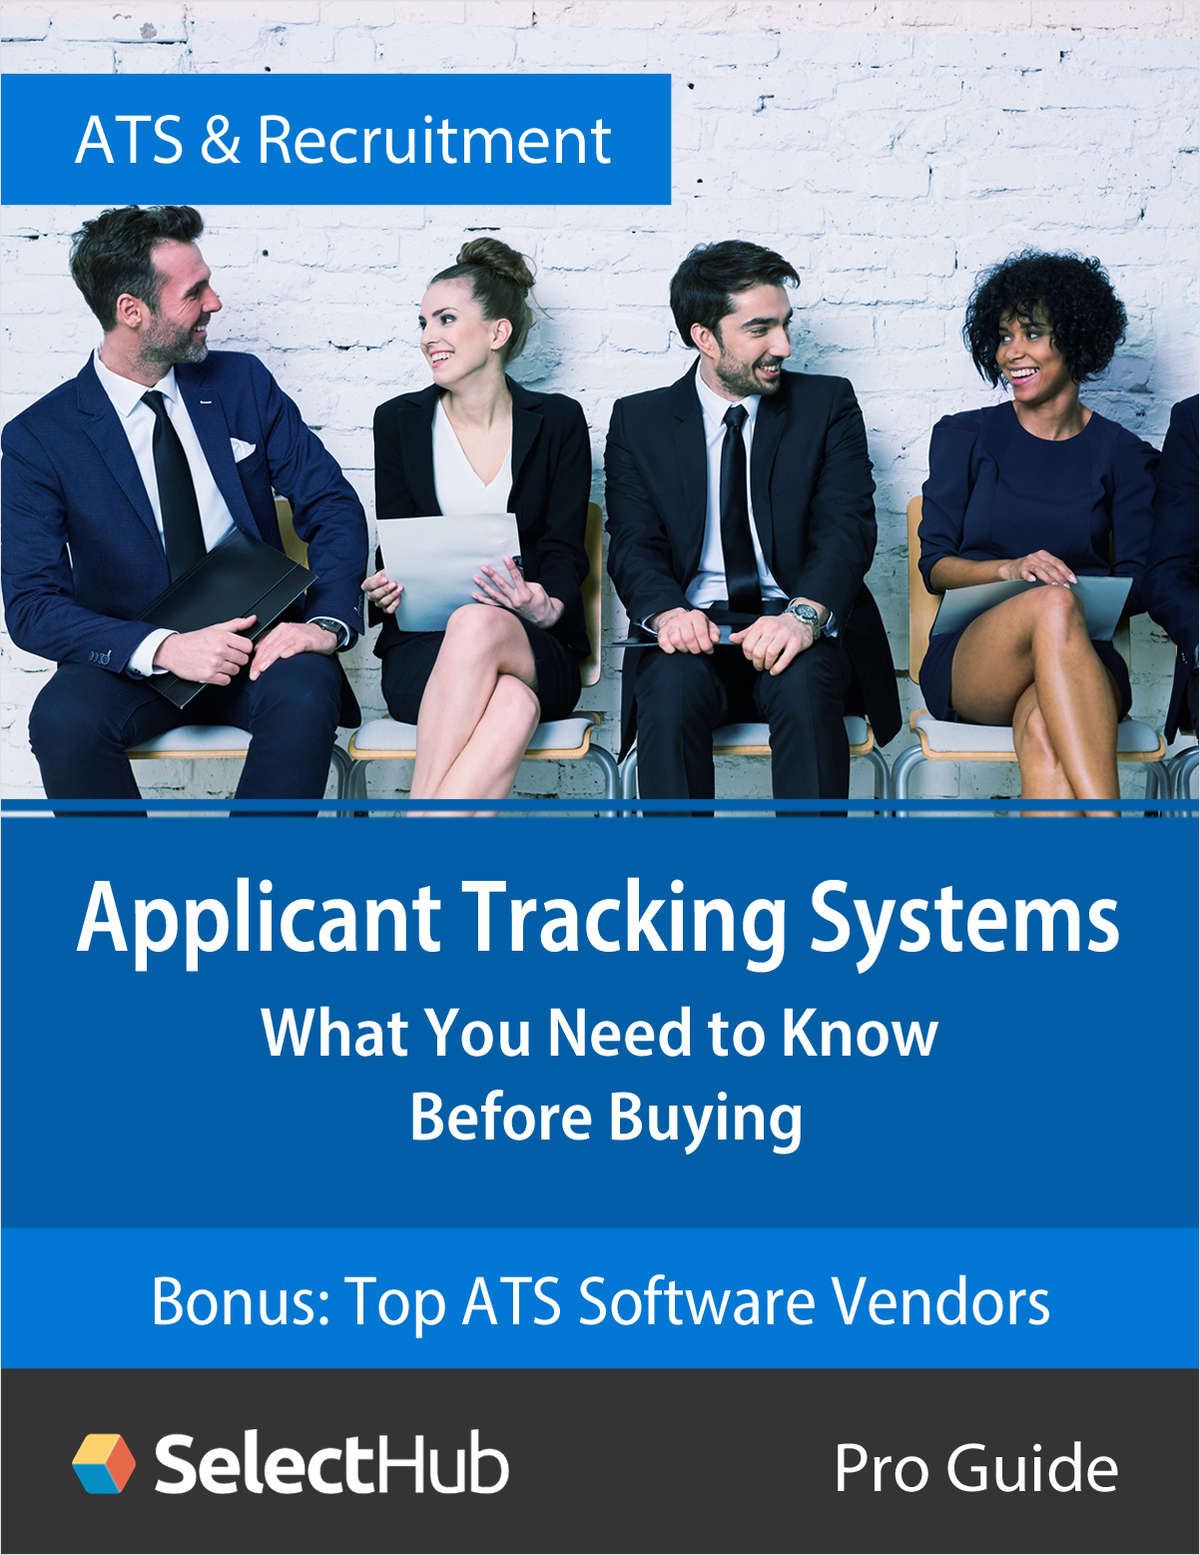 Applicant Tracking Systems: What You Need to Know Before Buying